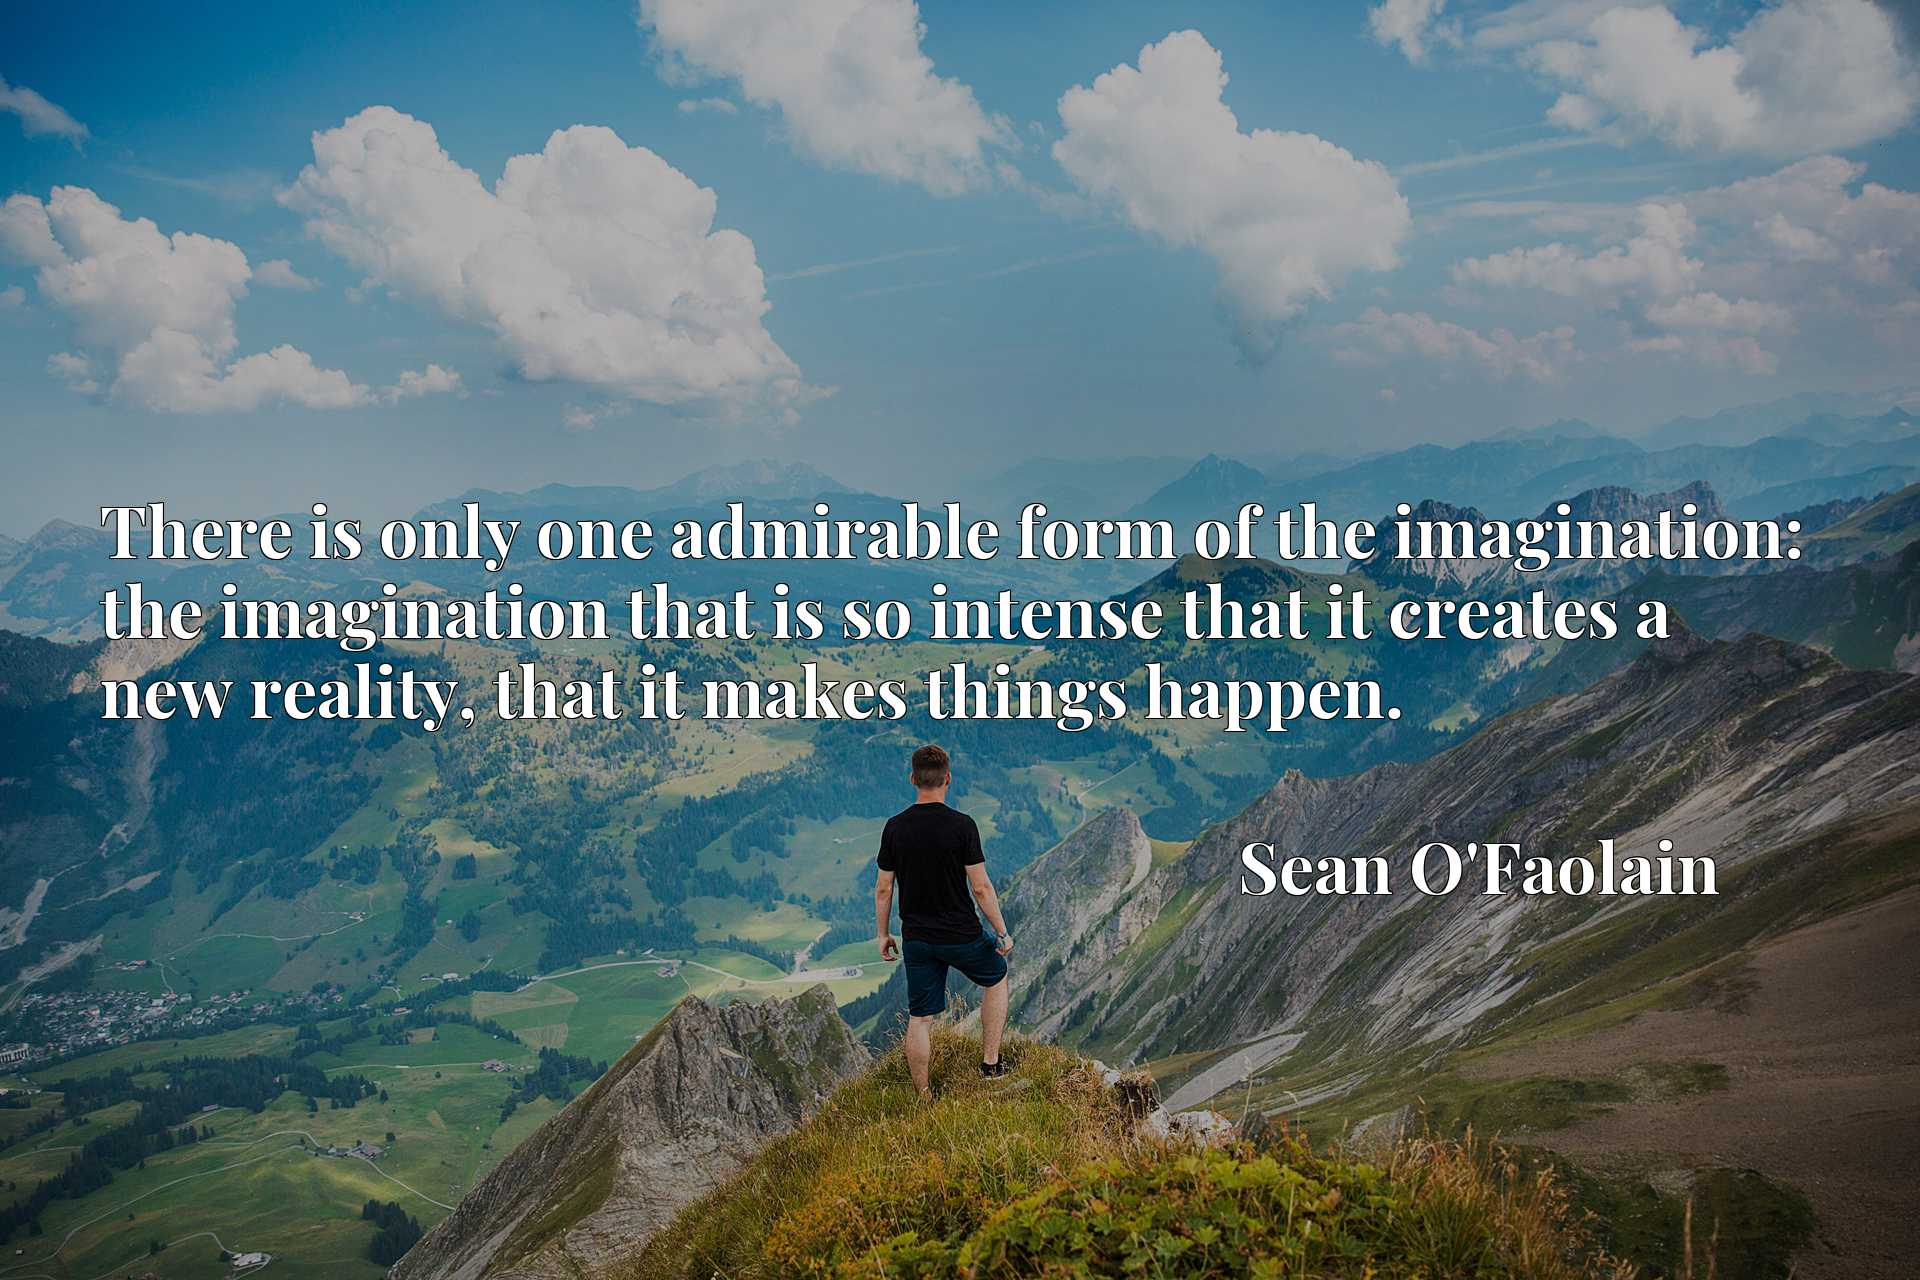 There is only one admirable form of the imagination: the imagination that is so intense that it creates a new reality, that it makes things happen.